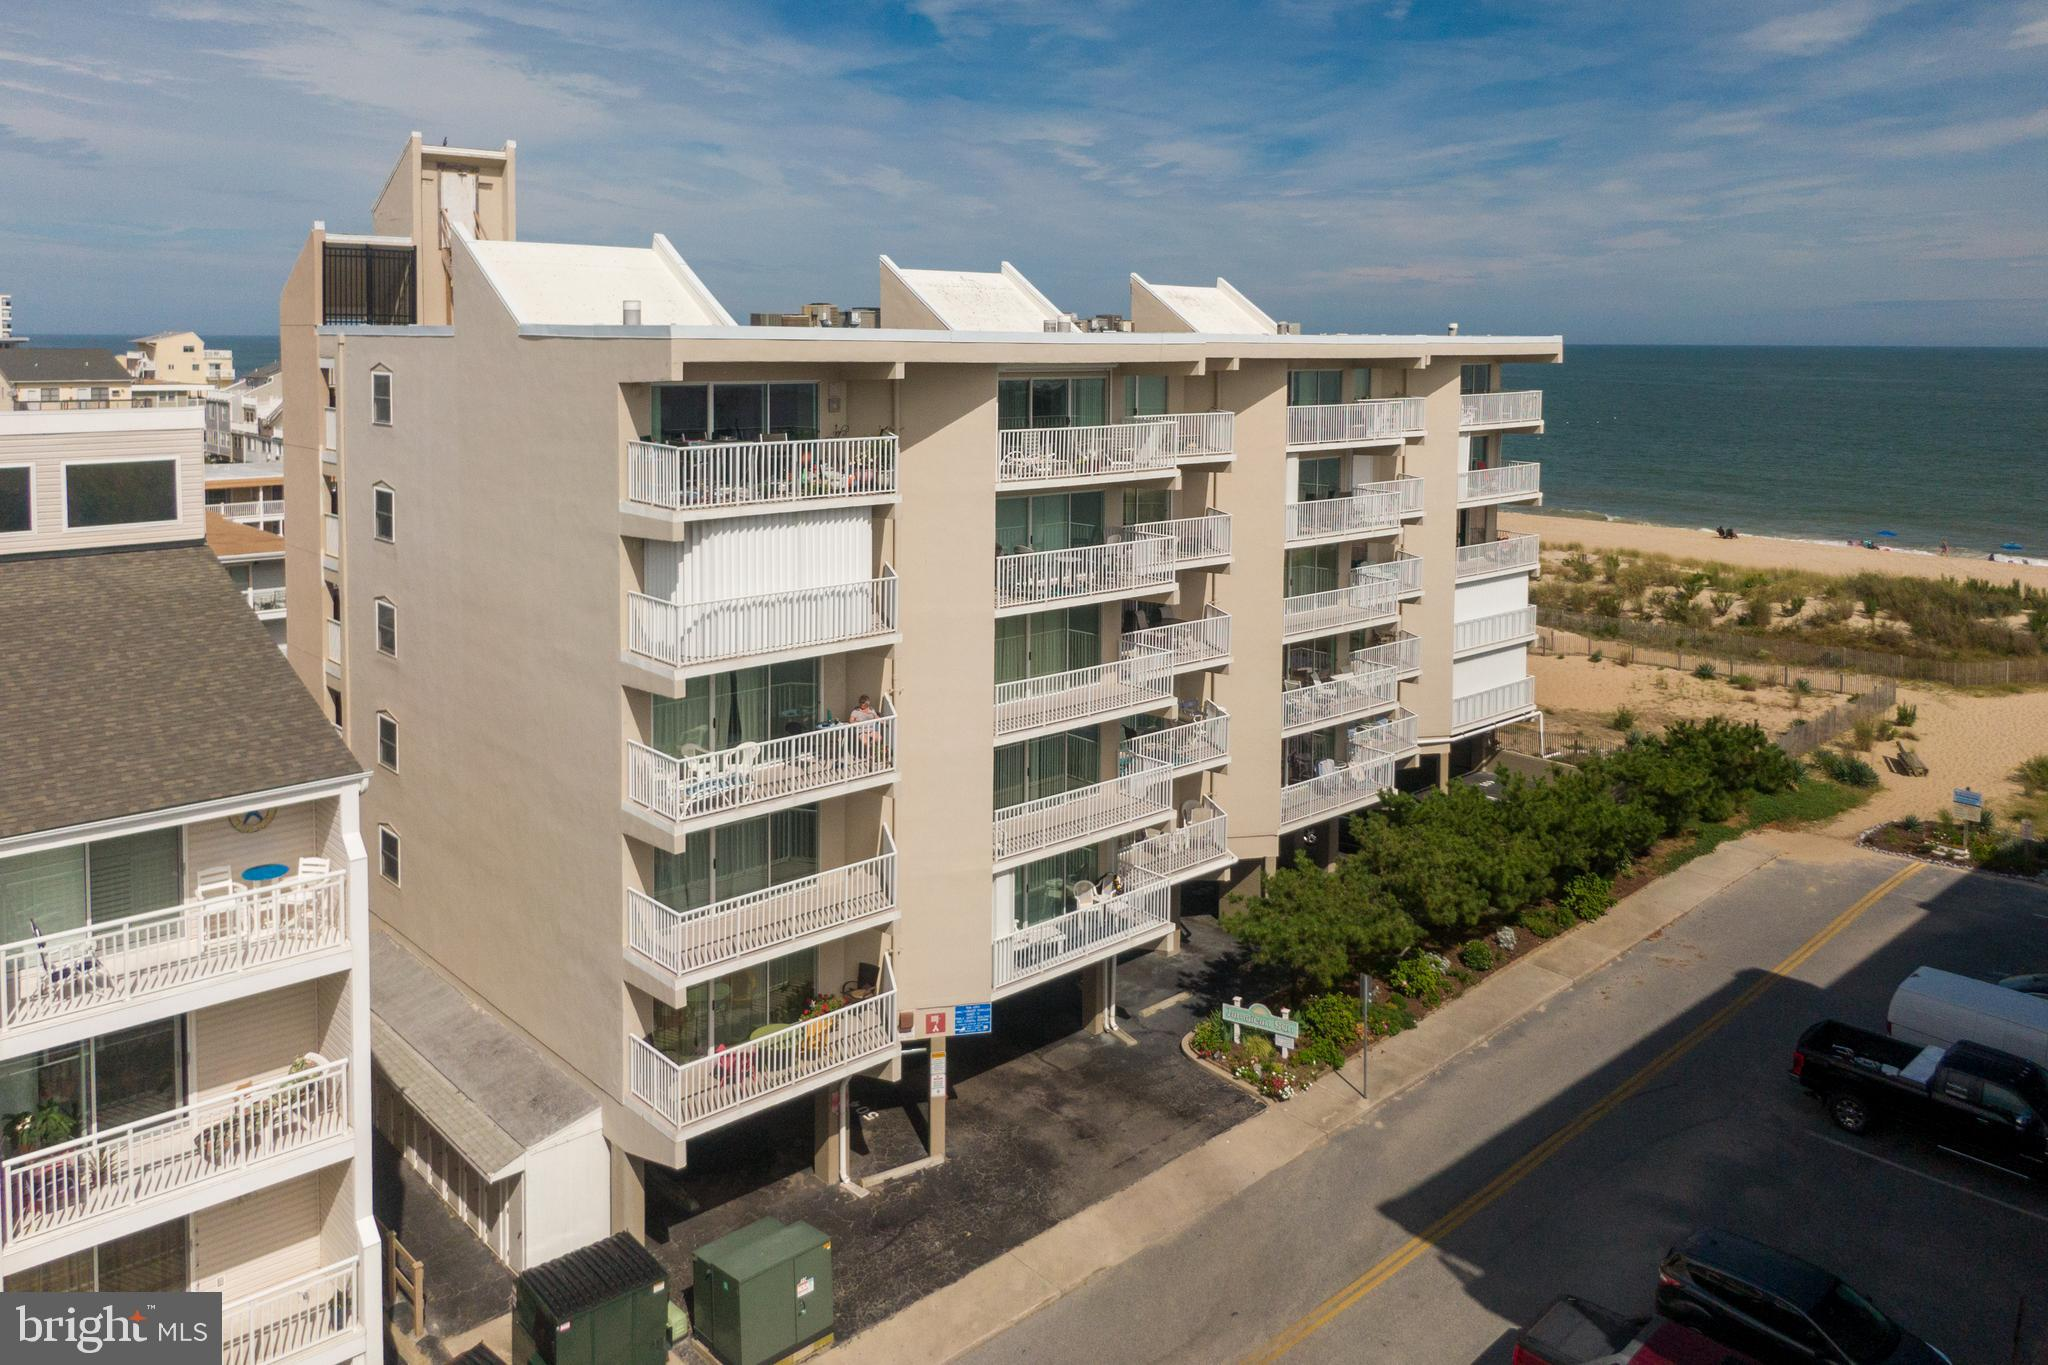 Fabulous location Oceanfront at 77th street! Jamaican Sun 102 is one off the ocean with fantastic oc